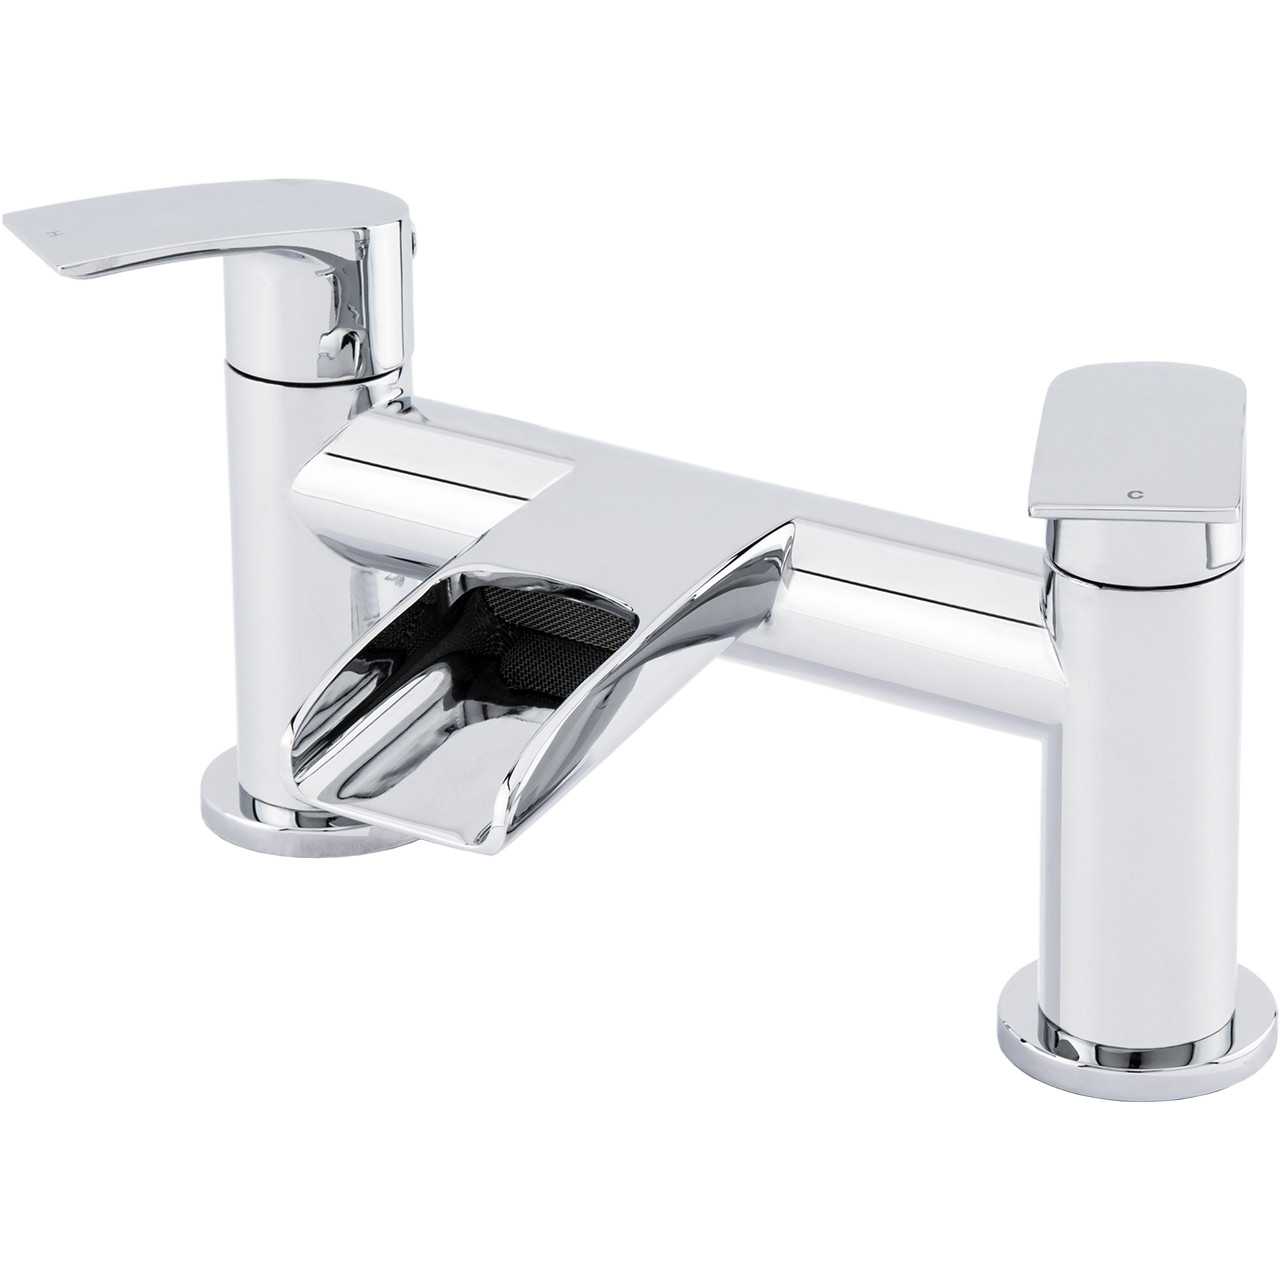 Halo Waterfall Bath Filler Tap